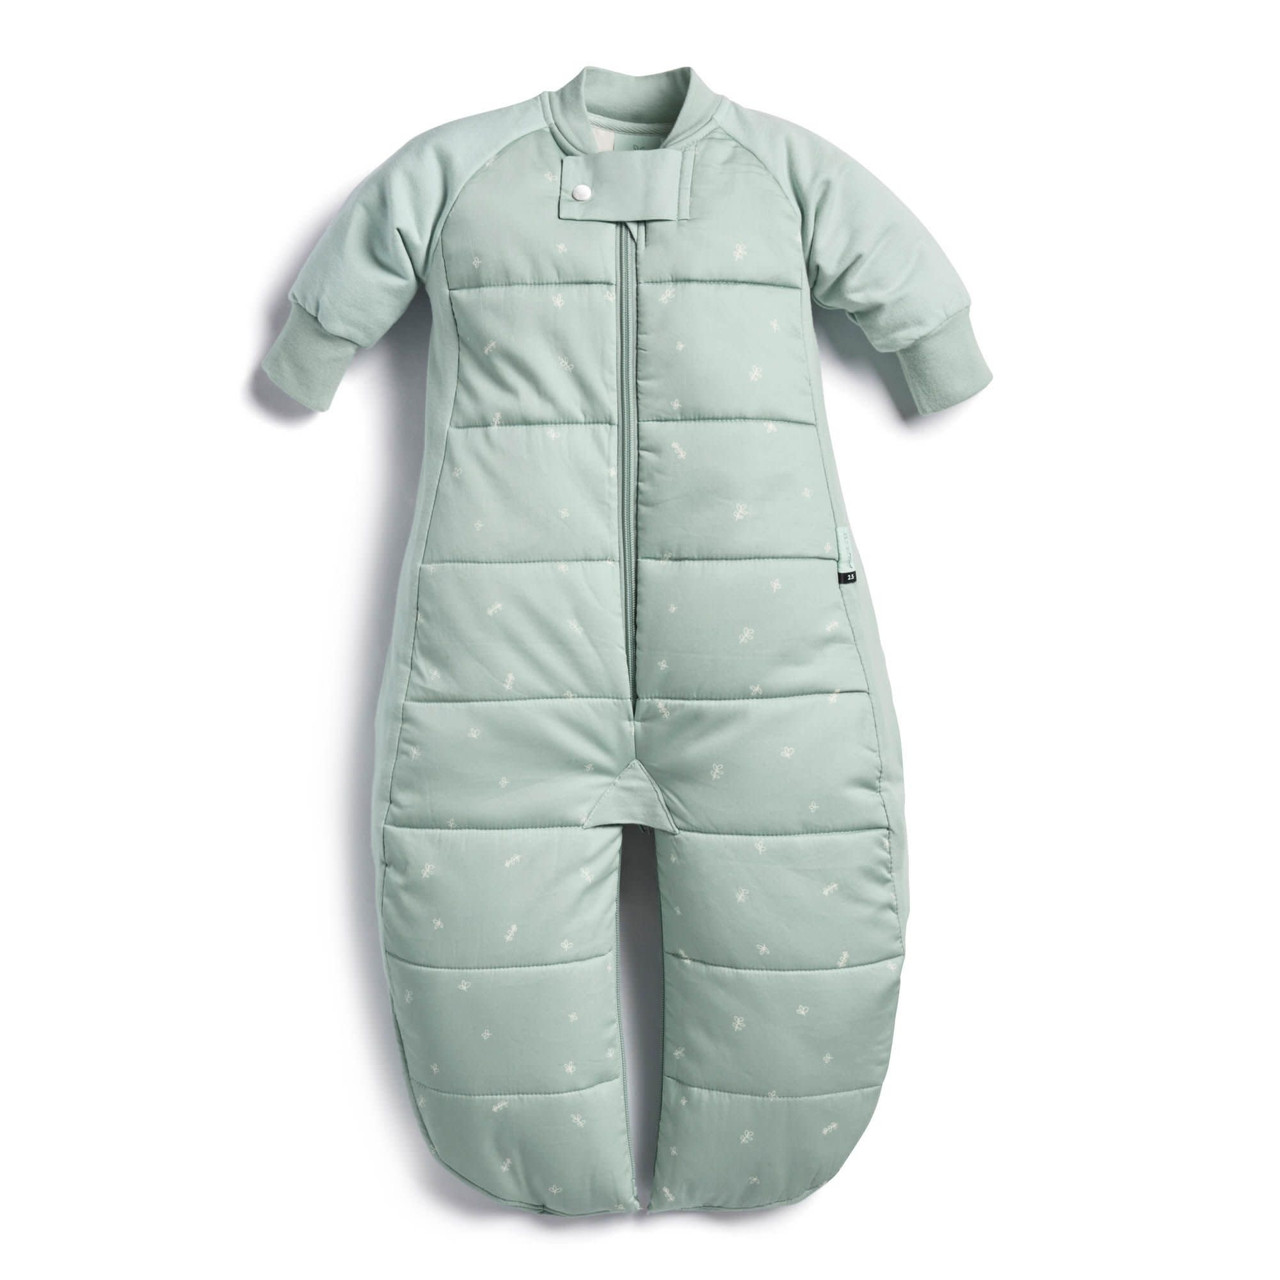 Ergopouch Sleepsuit Bag 3.5 Tog 2-4 Years SAGE